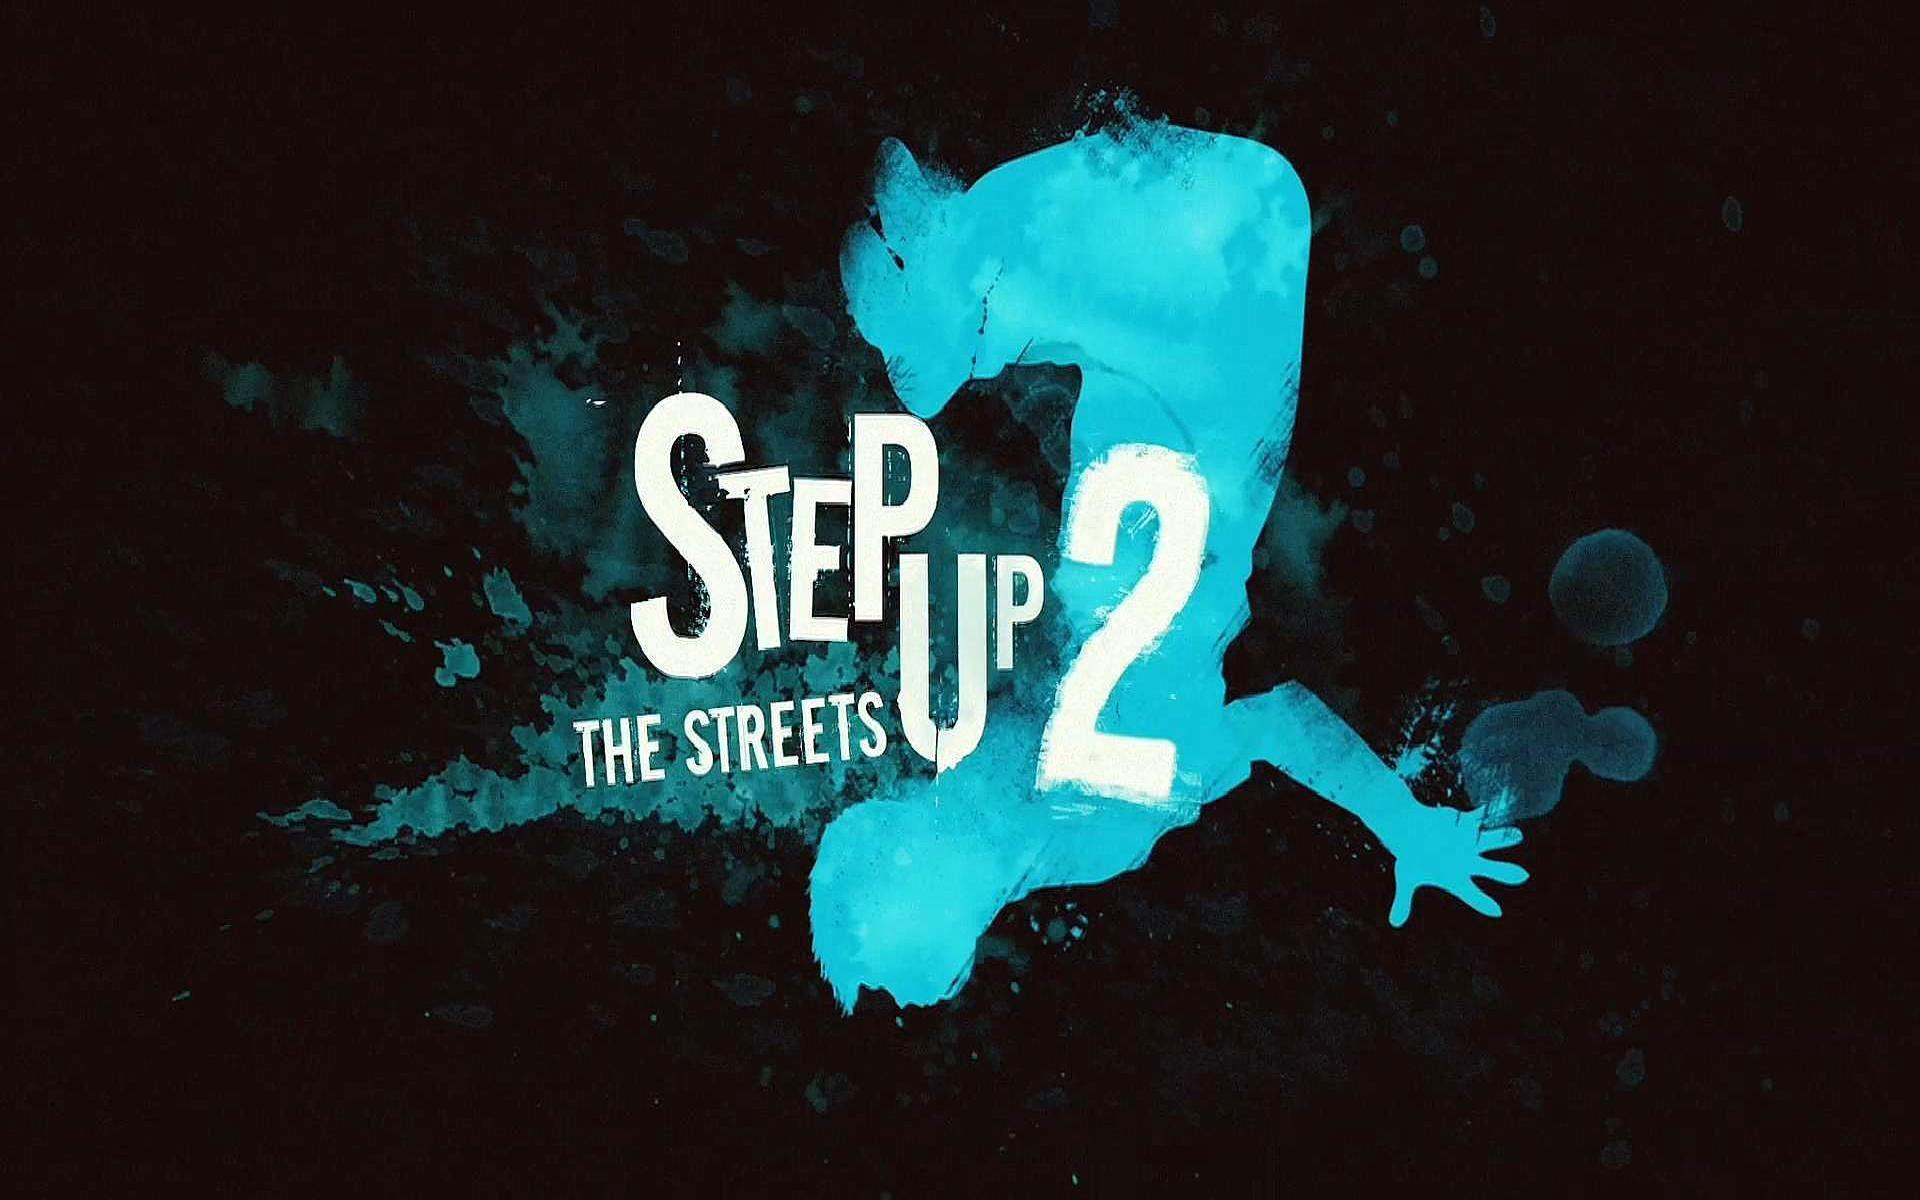 Step Up 2 The Streets Widescreen Wallpapers | Movie Wallpapers